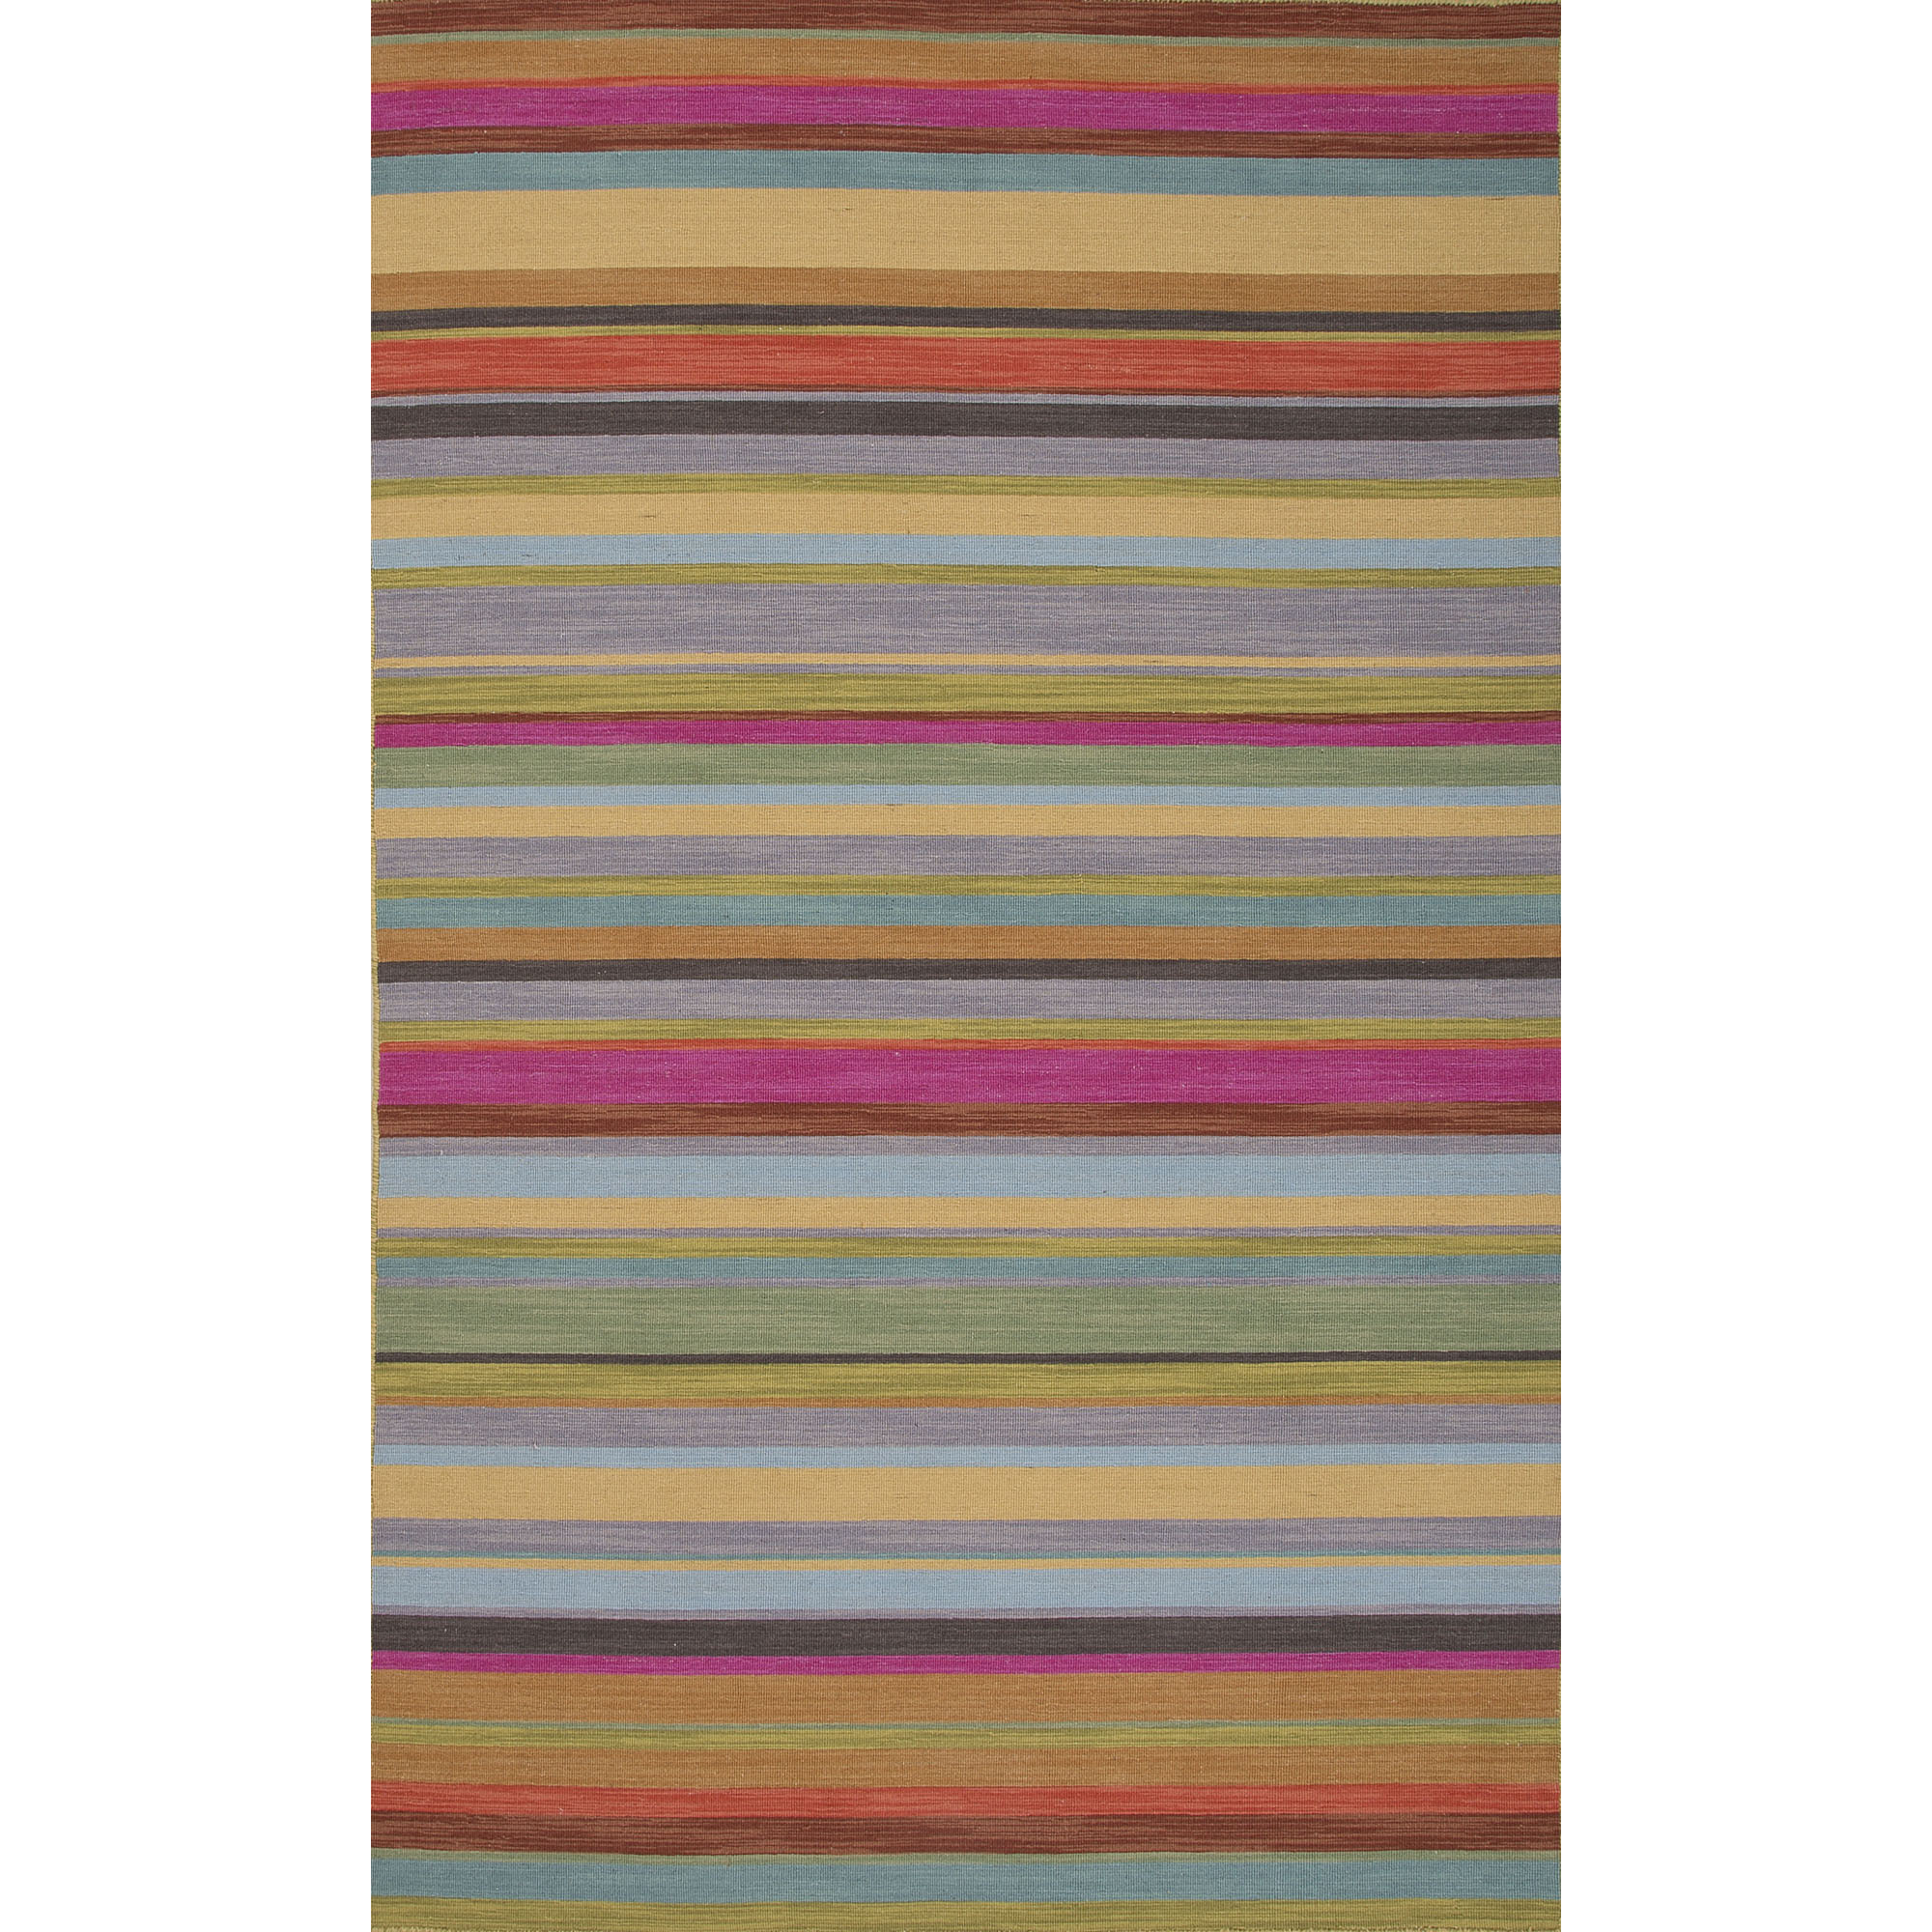 Pura Vida 2 x 3 Rug by JAIPUR Living at Sprintz Furniture